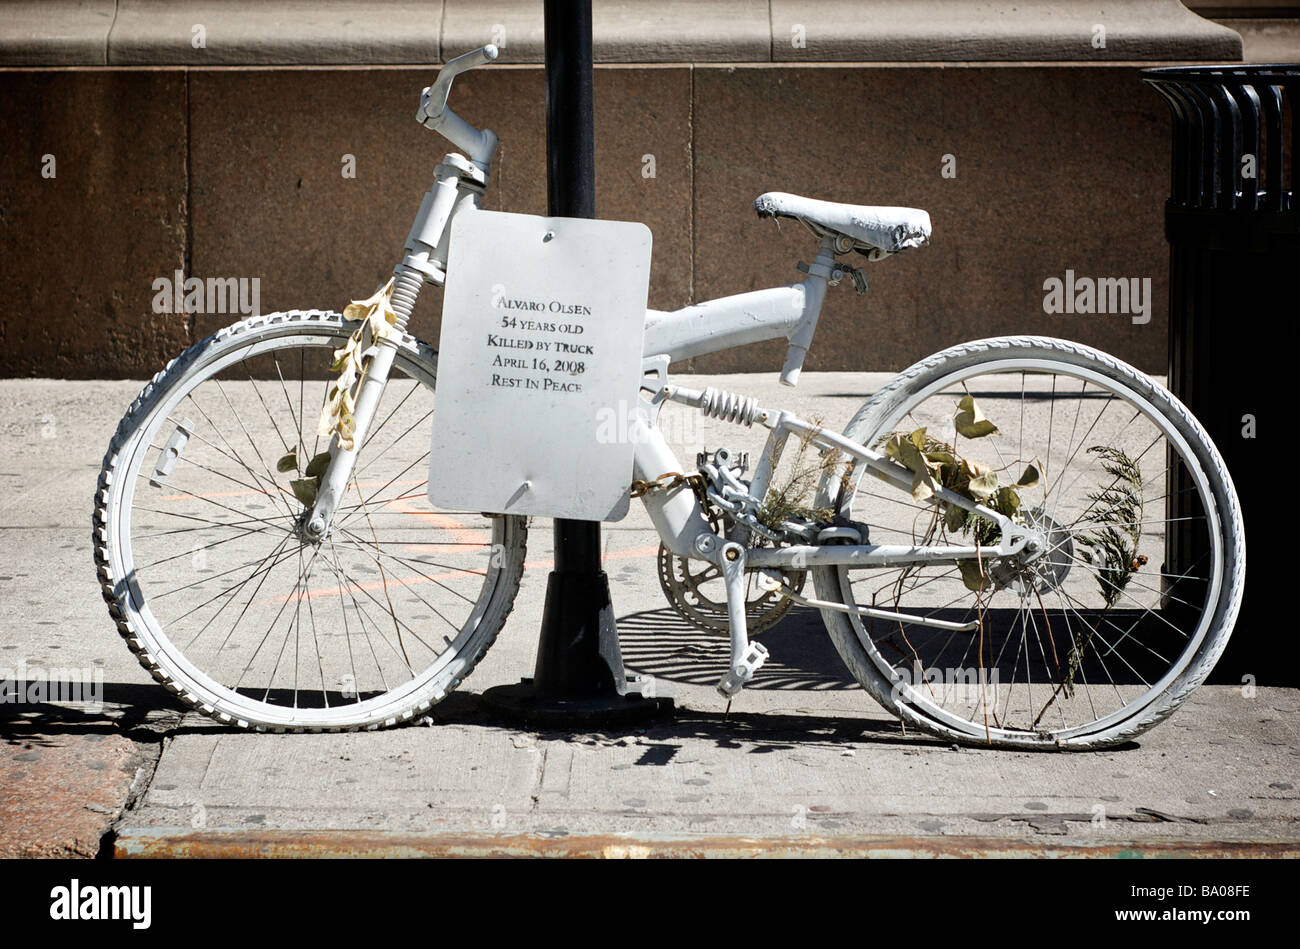 Ghost Bike in New York, Identifying the Name of a Bicyclist Killed by a Truck - Stock Image